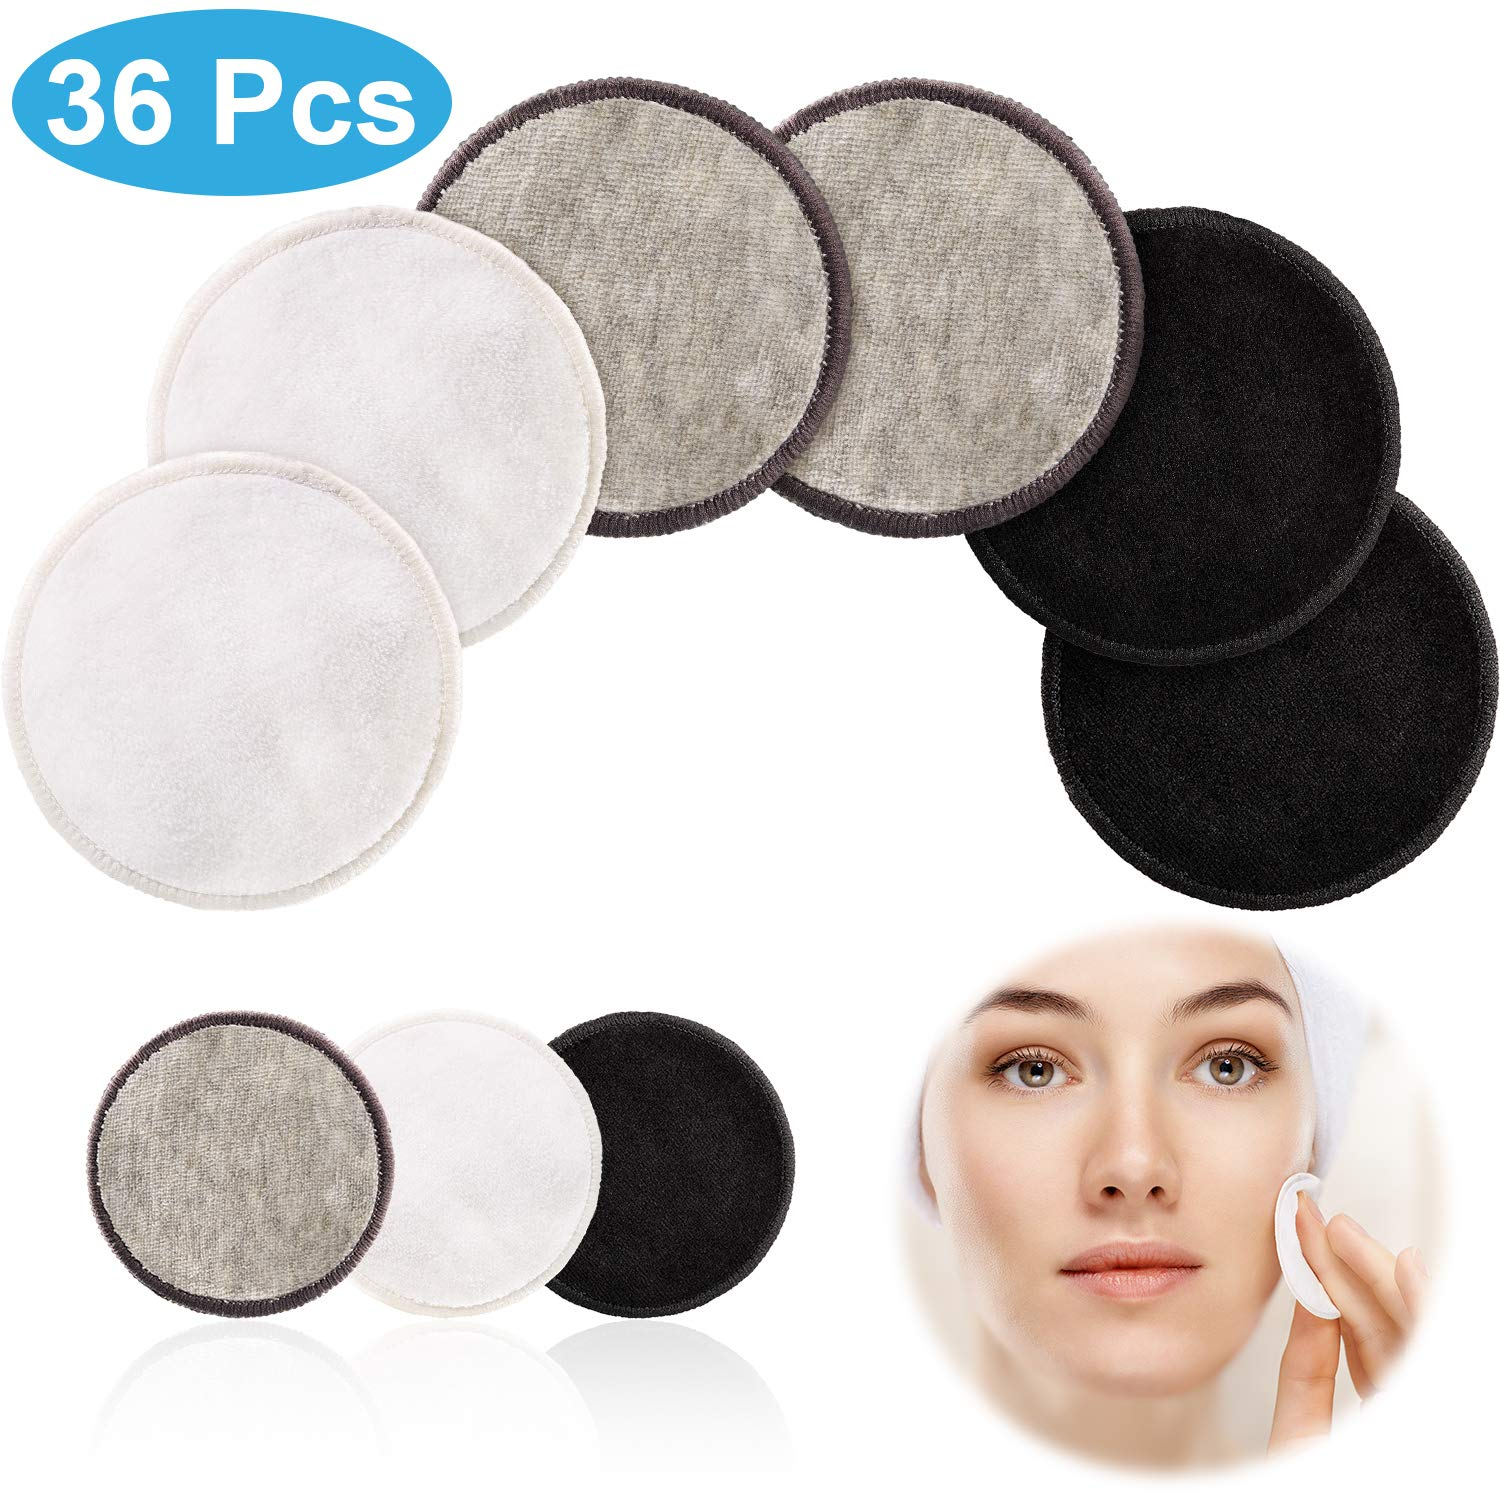 36 Pieces Reusable Face Makeup Remover Pads, 3.15 Inch Cotton Rounds, Colored Eye Makeup Remover Pads Bamboo Fibre And Velour Pads For Facial Cleaning by Yaomiao